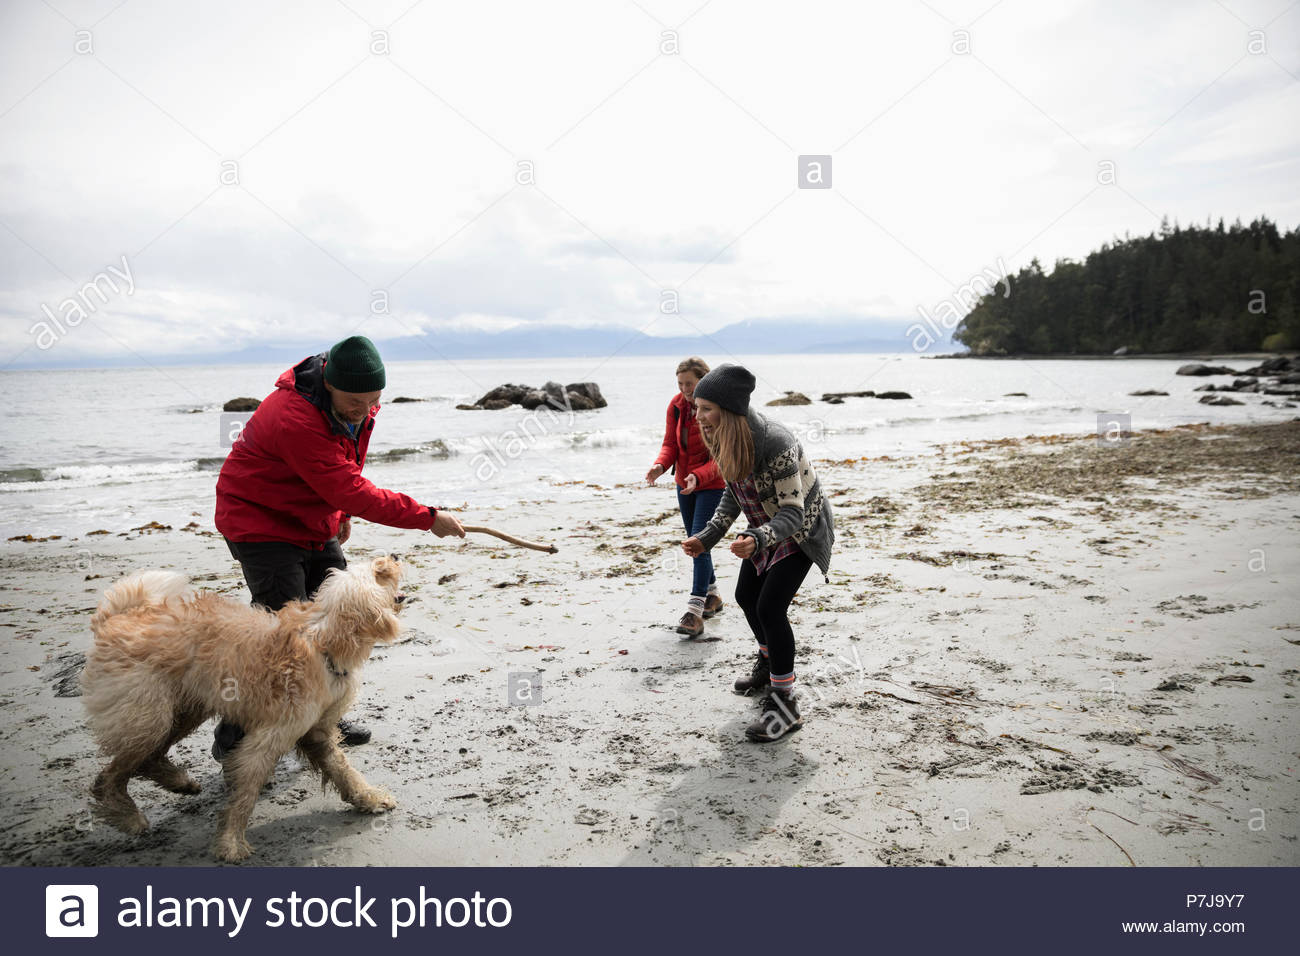 Family with dog playing on rugged beach - Stock Image